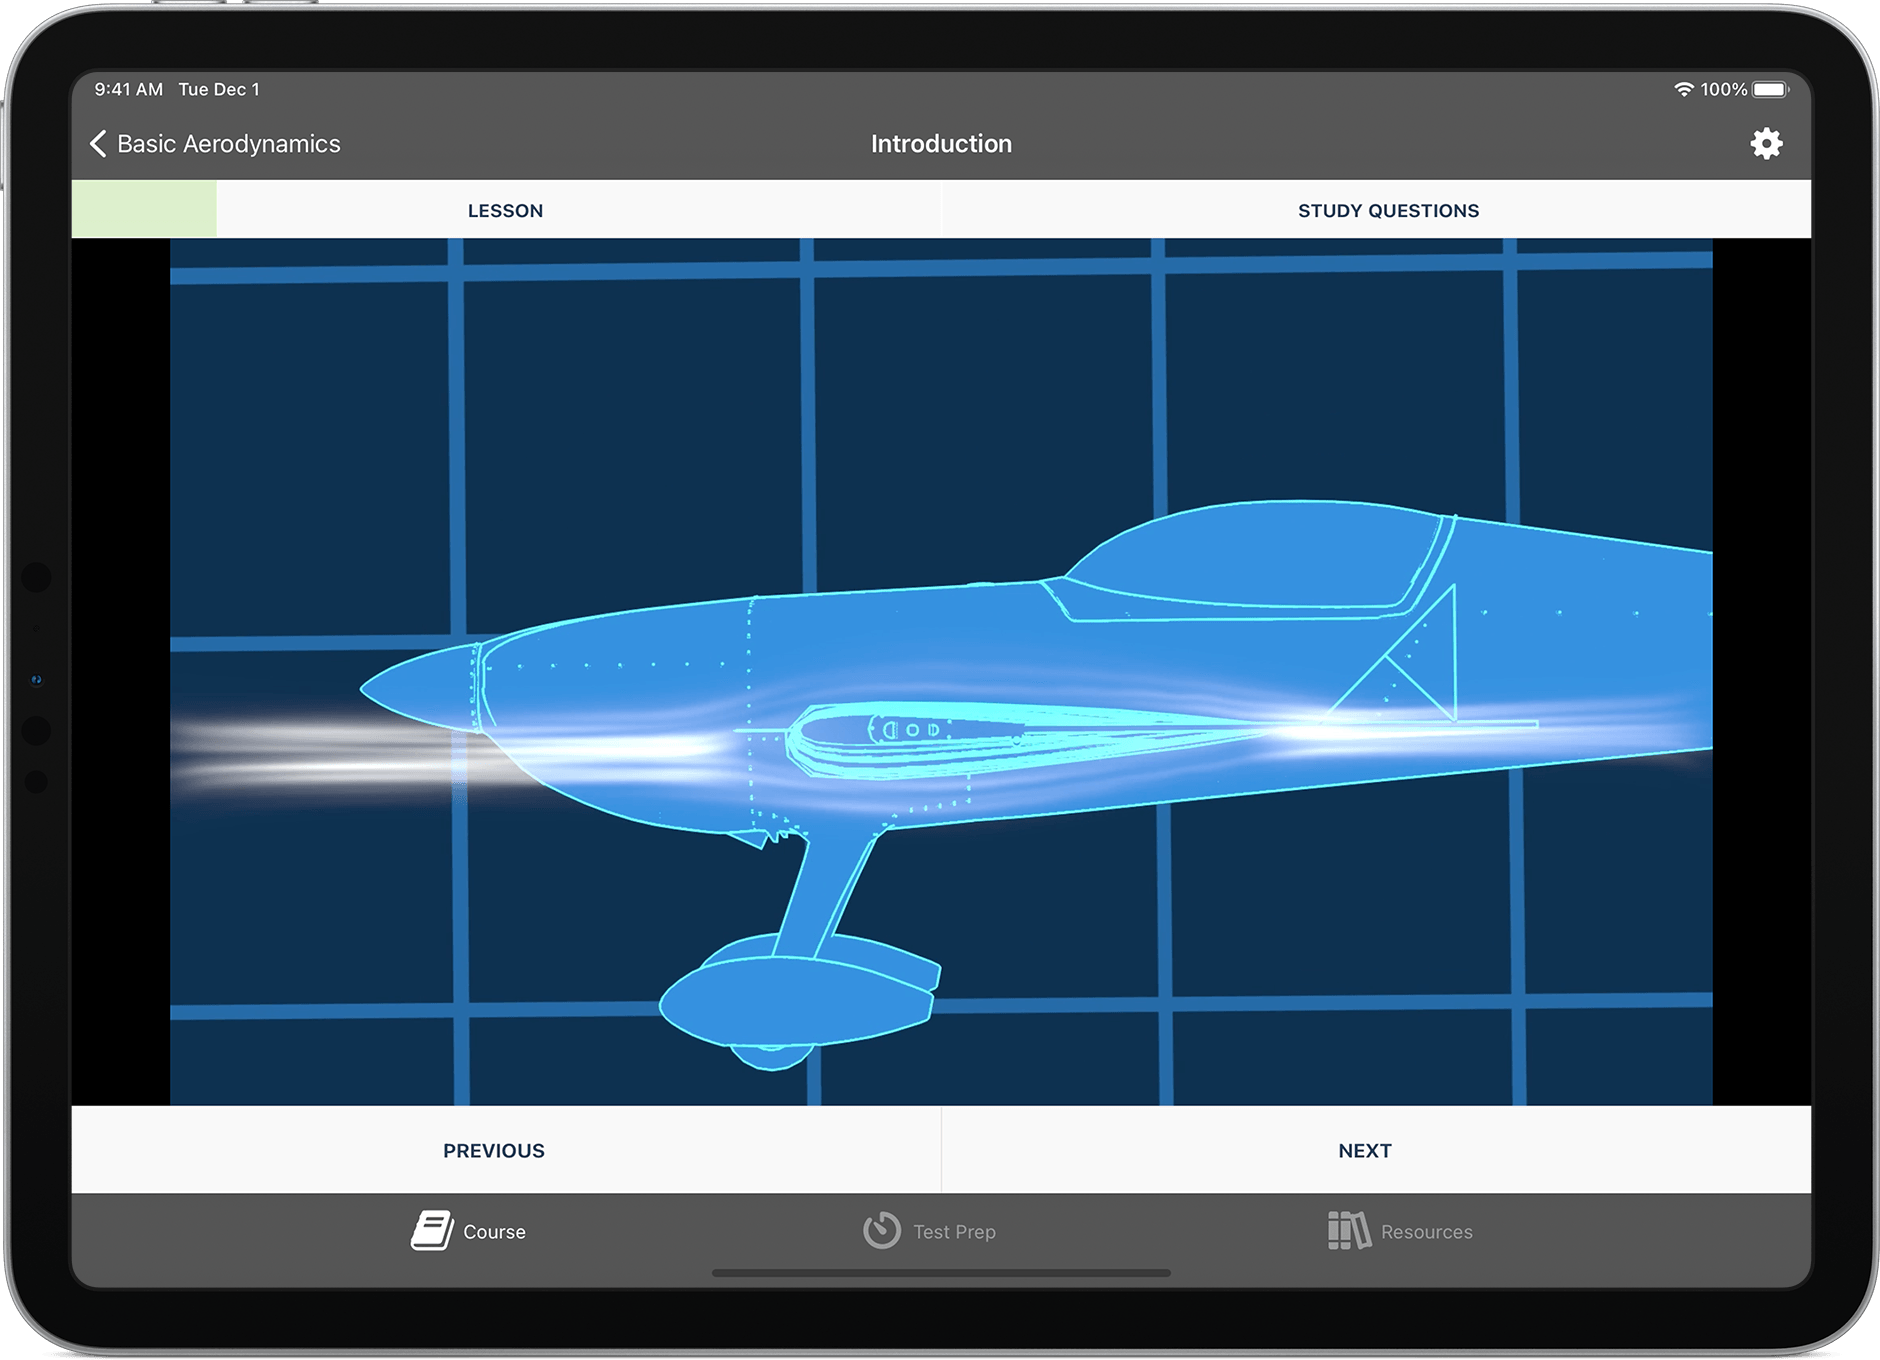 Ground School app lesson screen showing CG animation of airflow over an airplane wing